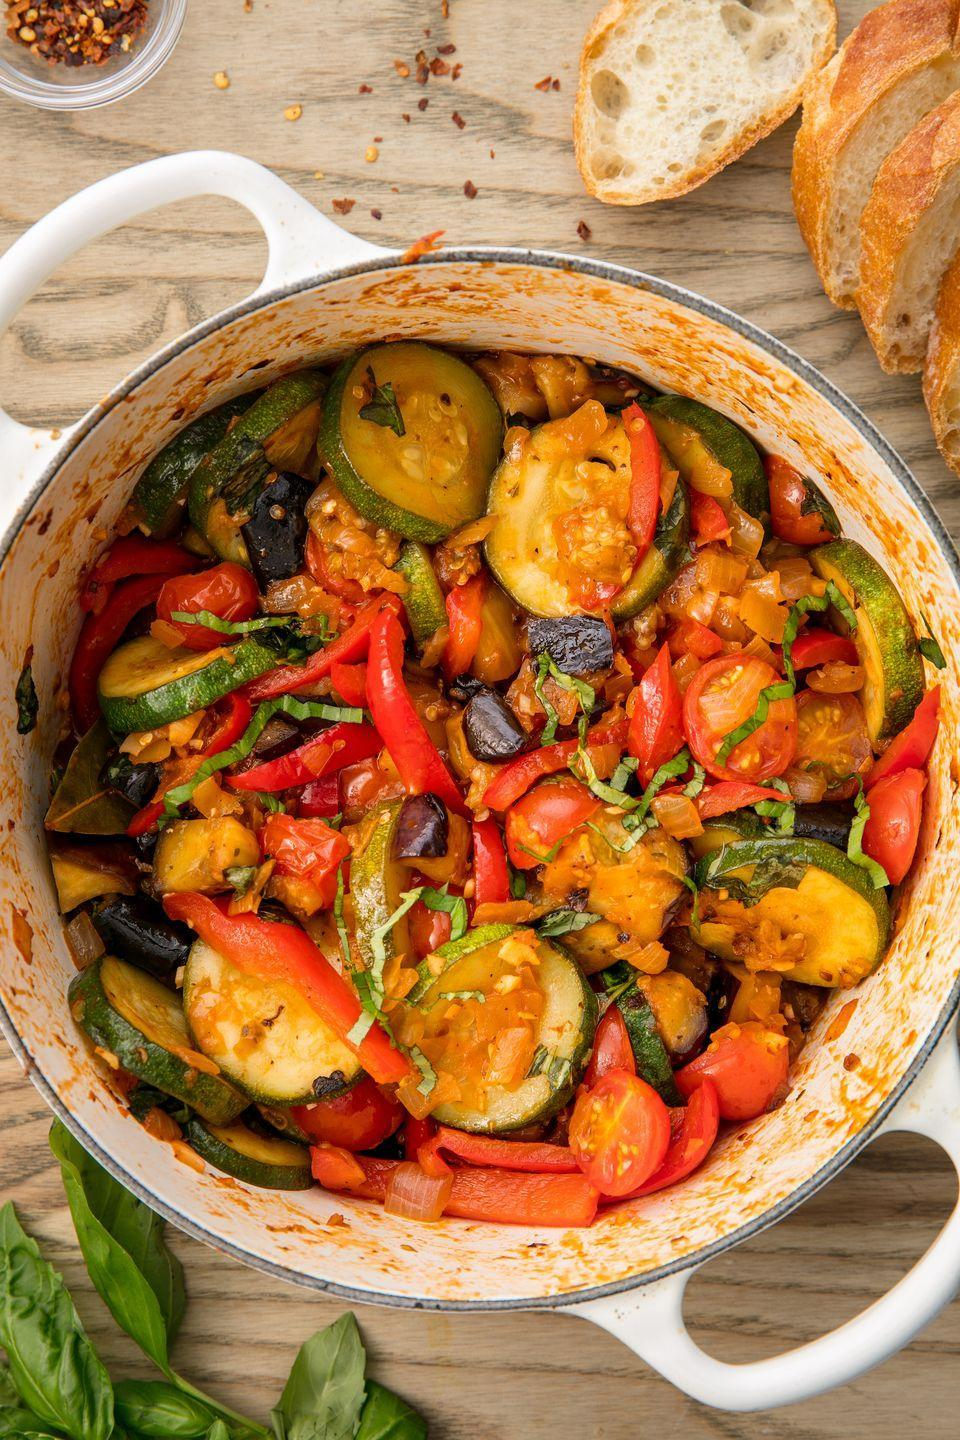 """<p>Remy would be so proud.</p><p>Get the recipe from <a href=""""https://www.delish.com/cooking/recipe-ideas/recipes/a54463/easy-traditional-ratatouille-recipe/"""" rel=""""nofollow noopener"""" target=""""_blank"""" data-ylk=""""slk:Delish"""" class=""""link rapid-noclick-resp"""">Delish</a>.</p>"""